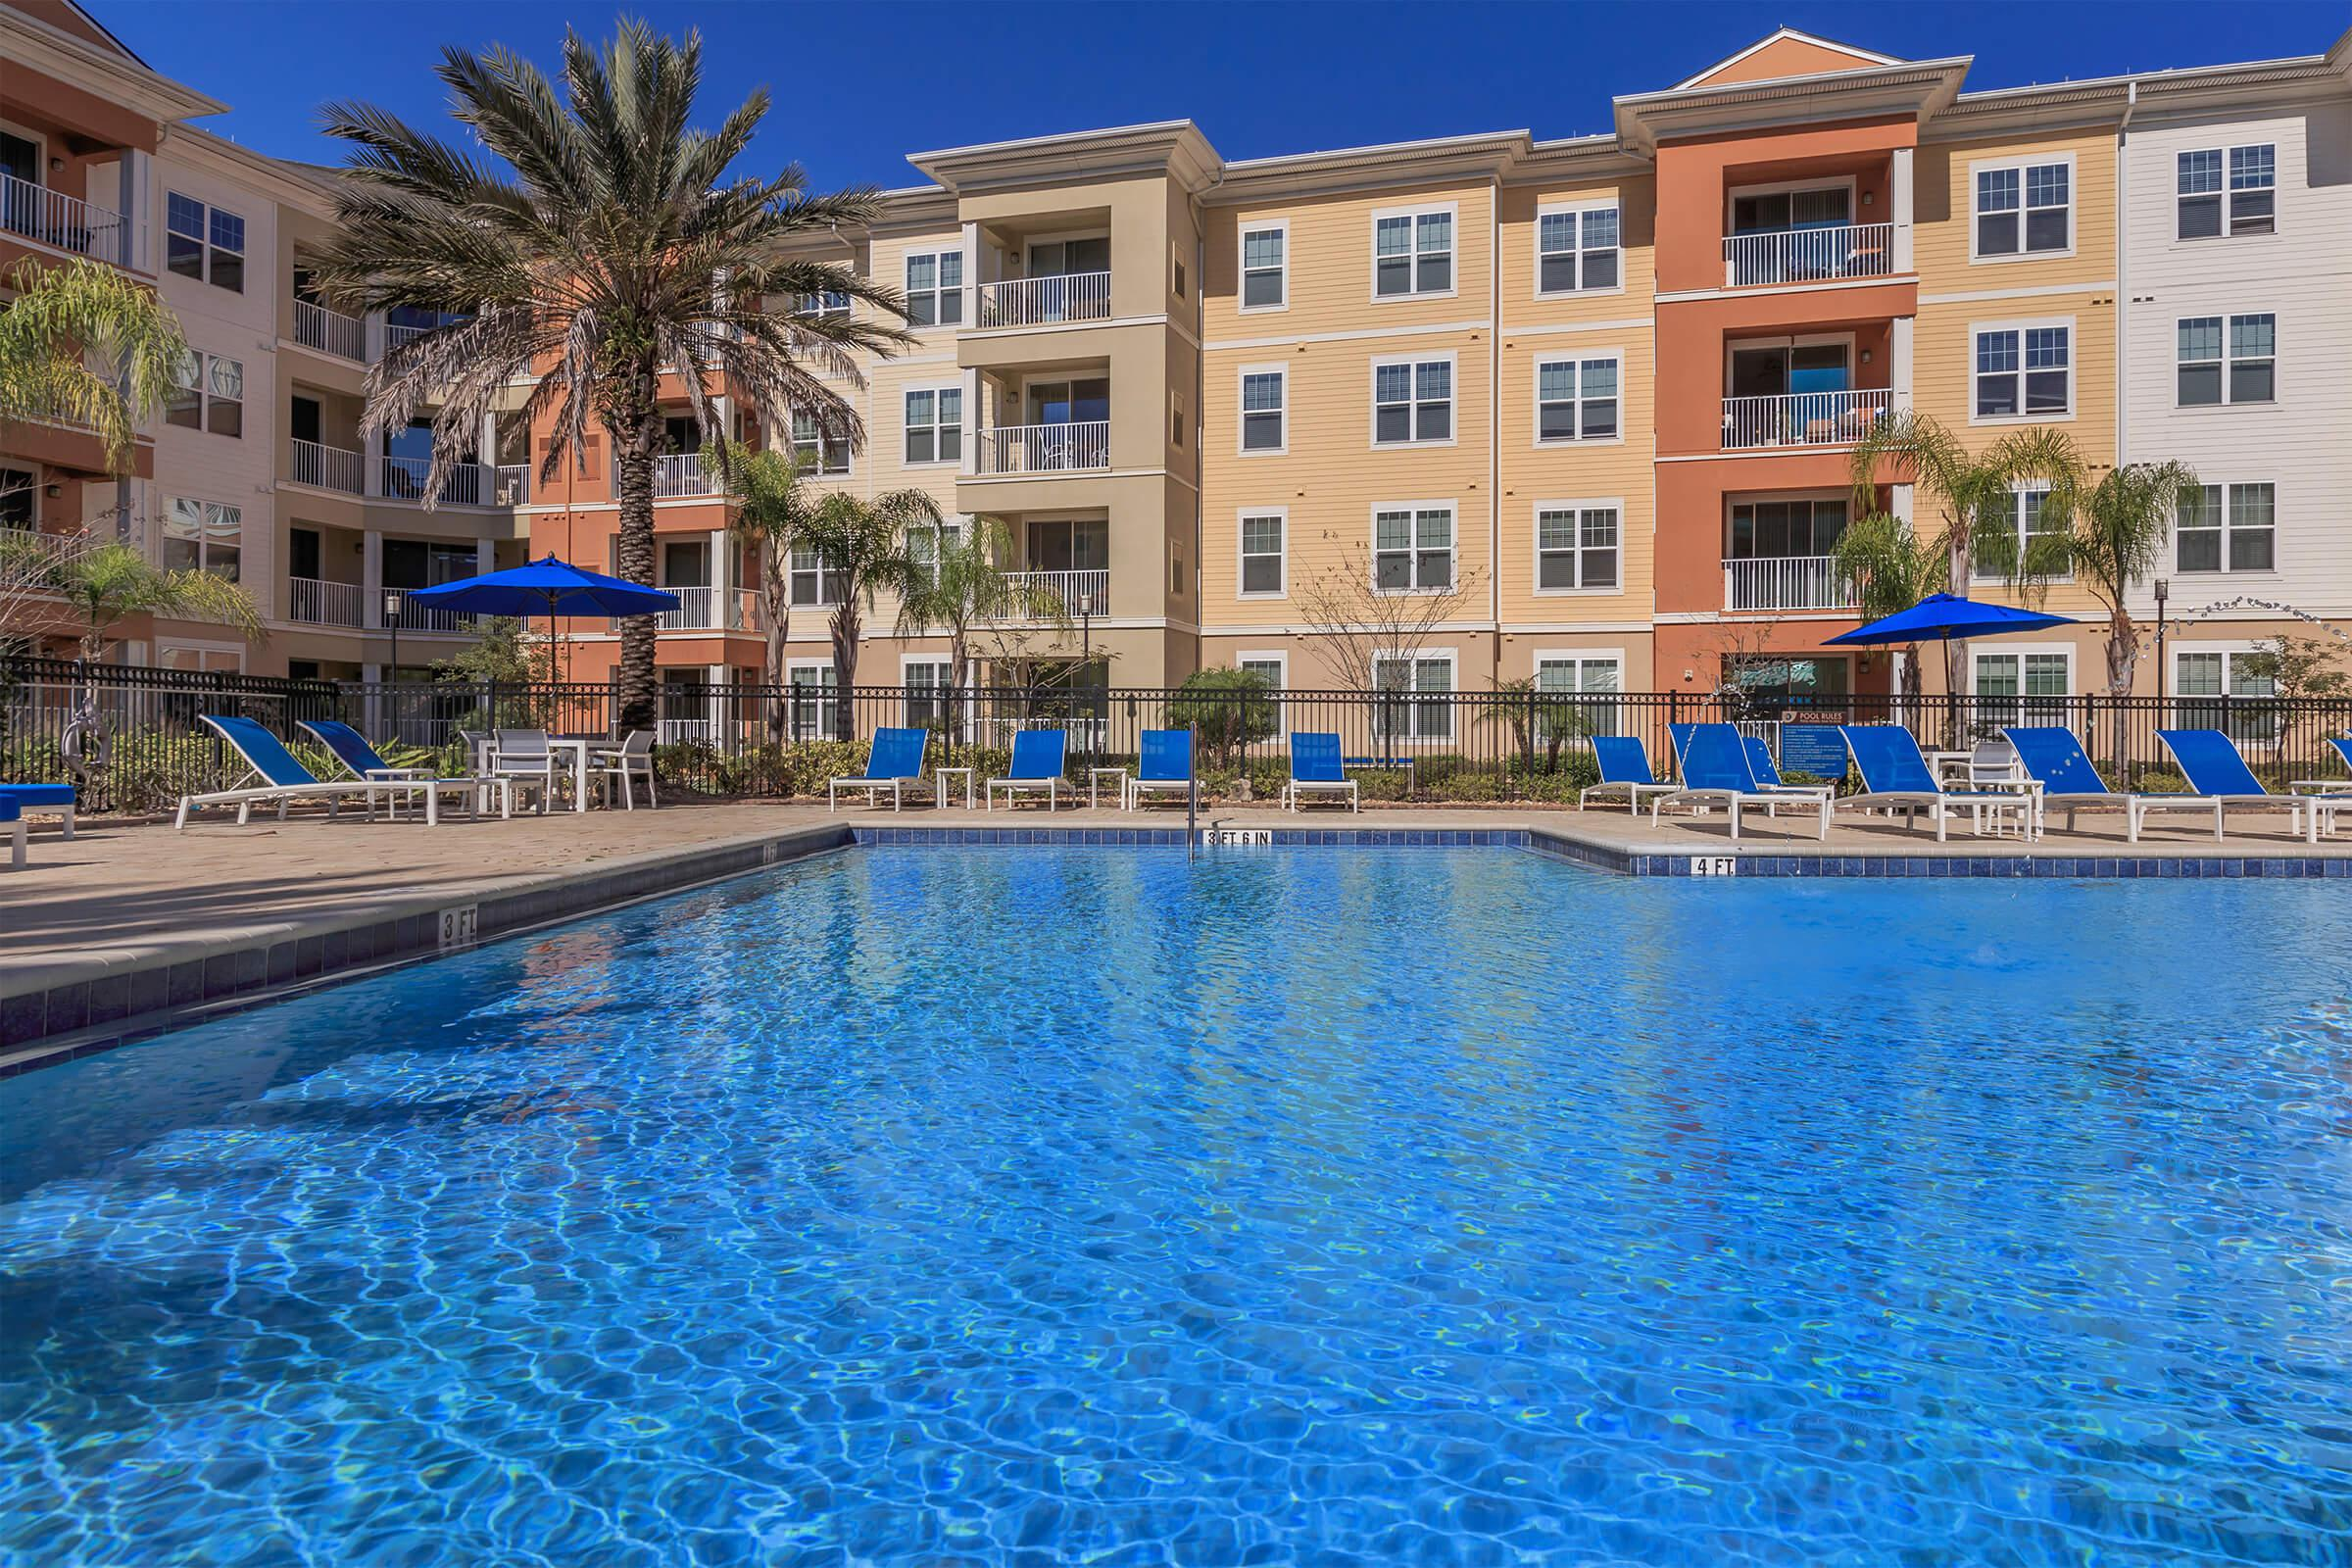 Pool at RiZE at Winter Springs Apartments in Winter Springs, FL